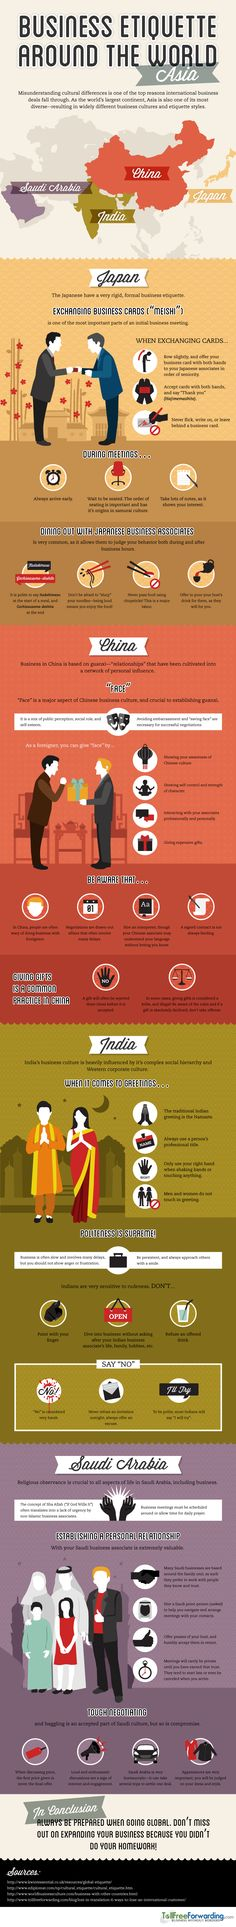 Business Etiquette Around the World (Asia)   #infographic #Business #Asia